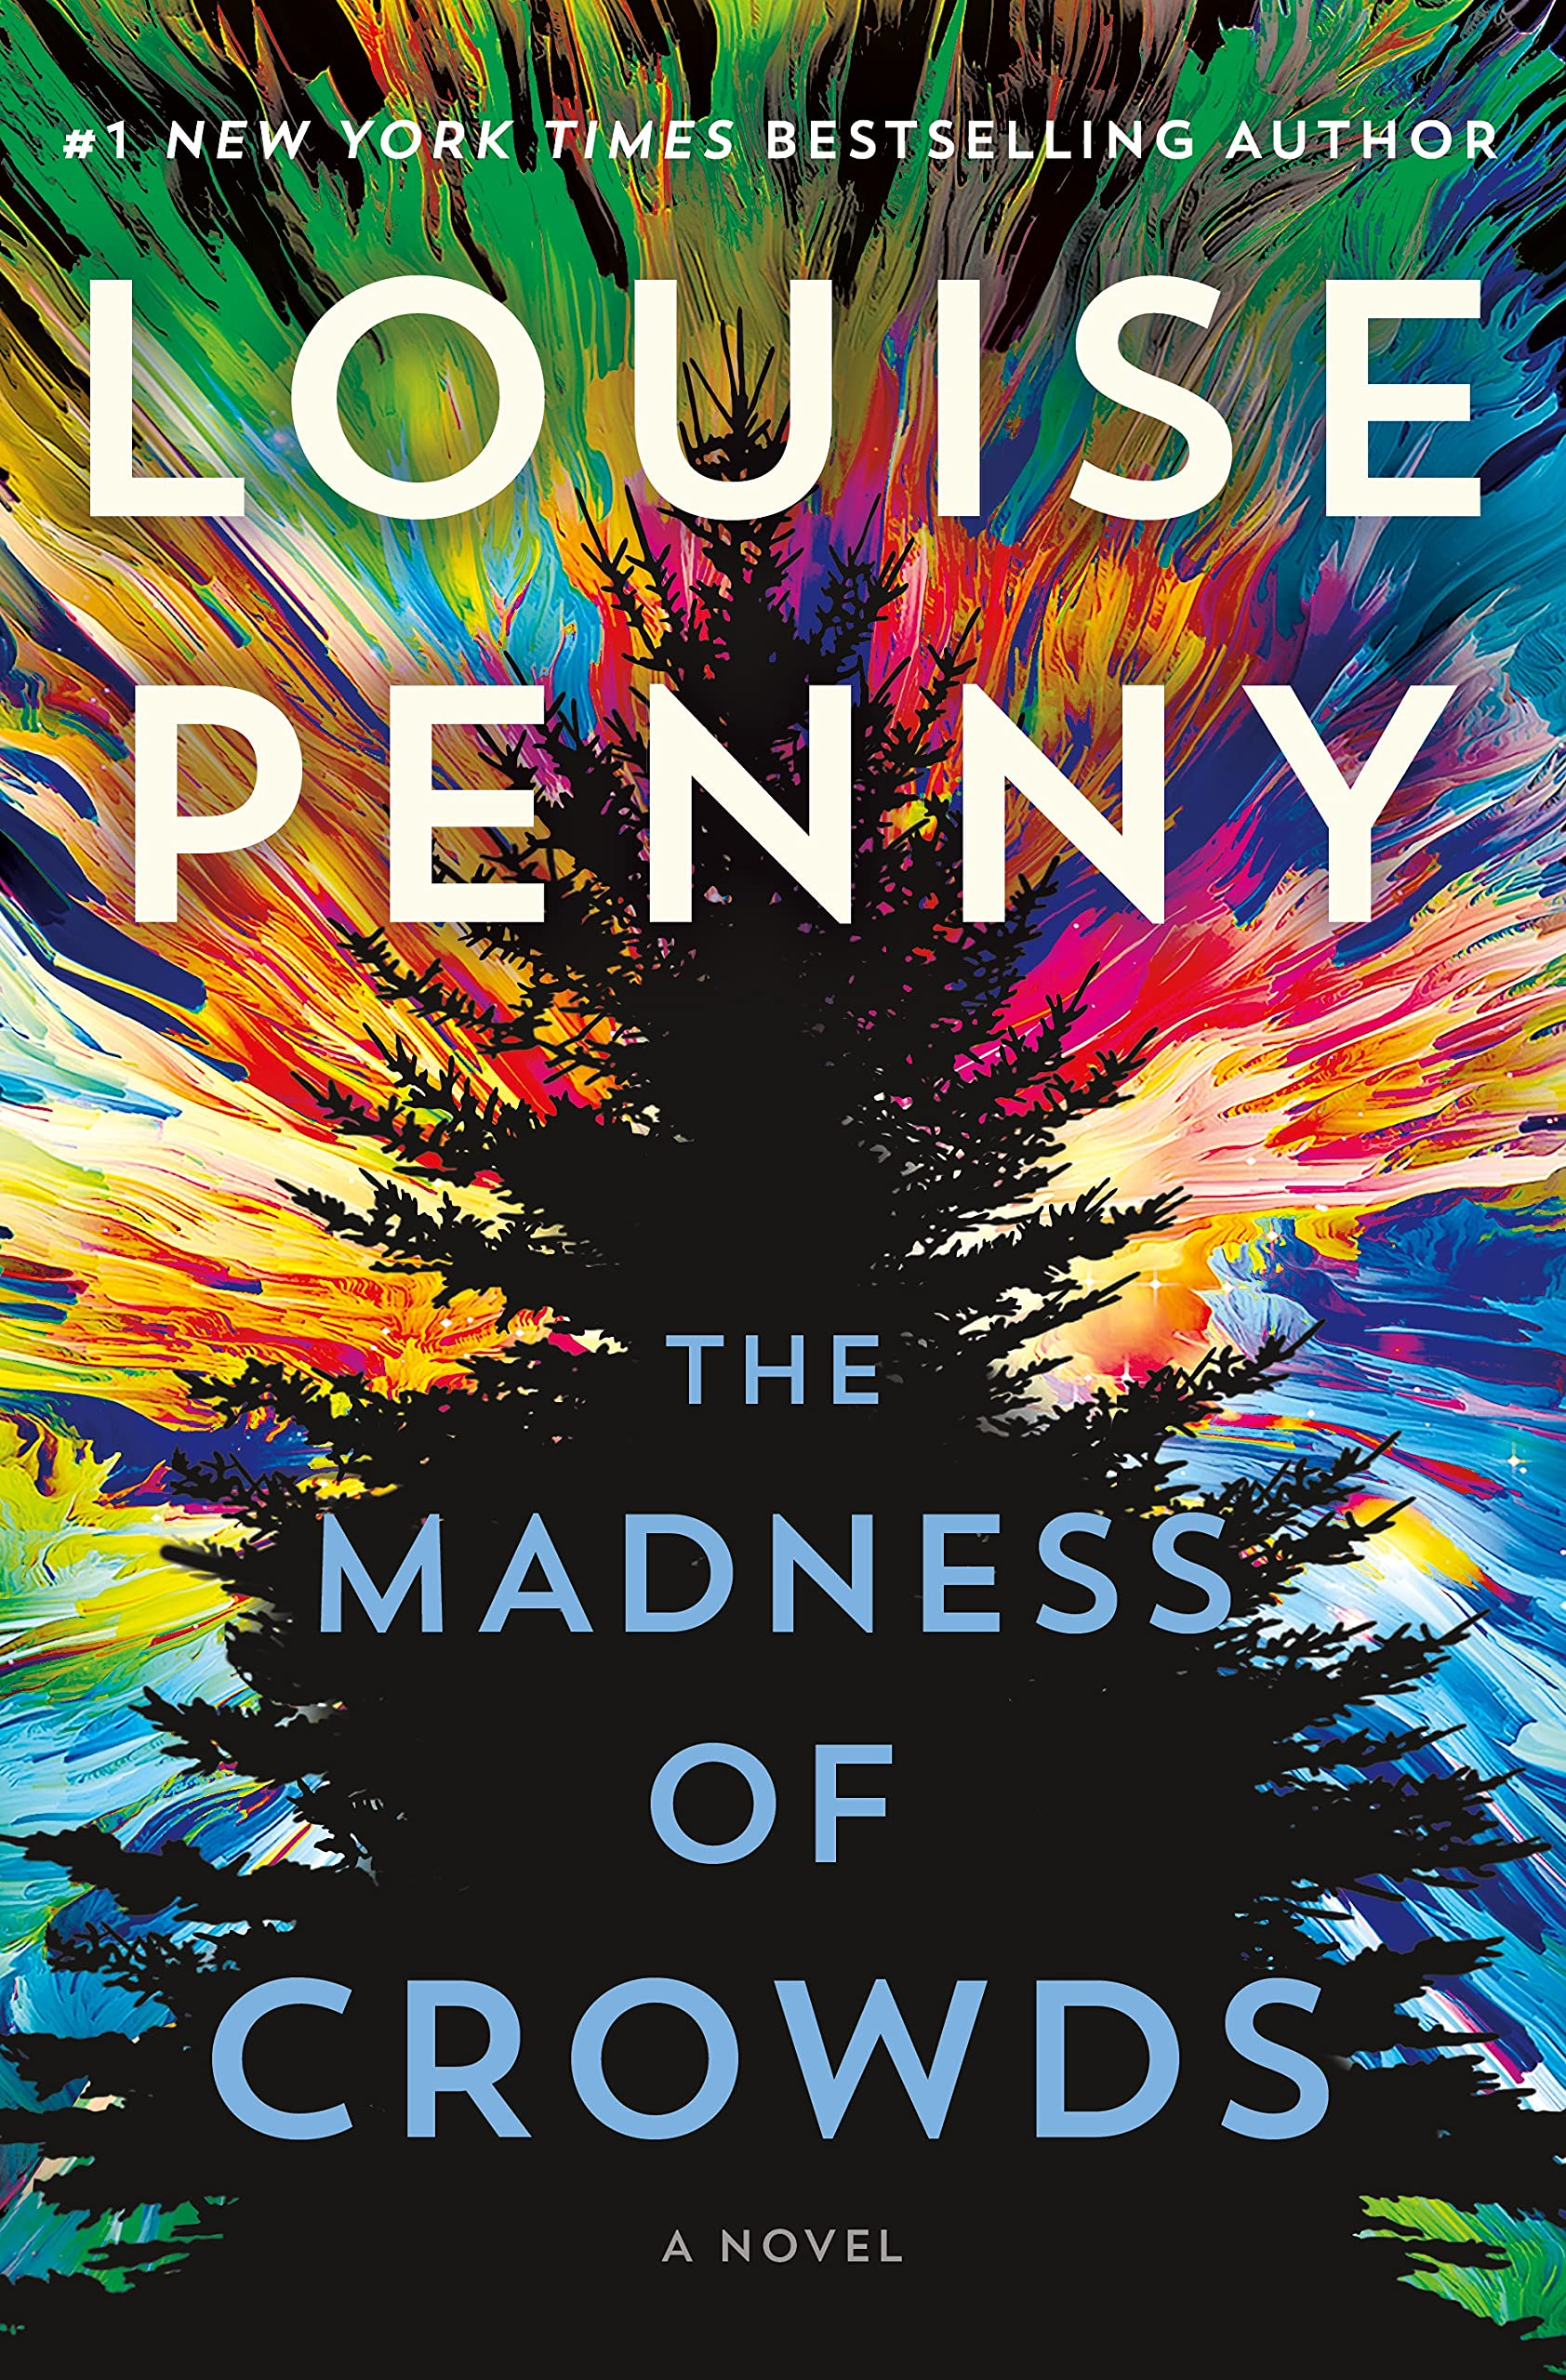 Cover image of The Madness of Crowds by Louise Penny